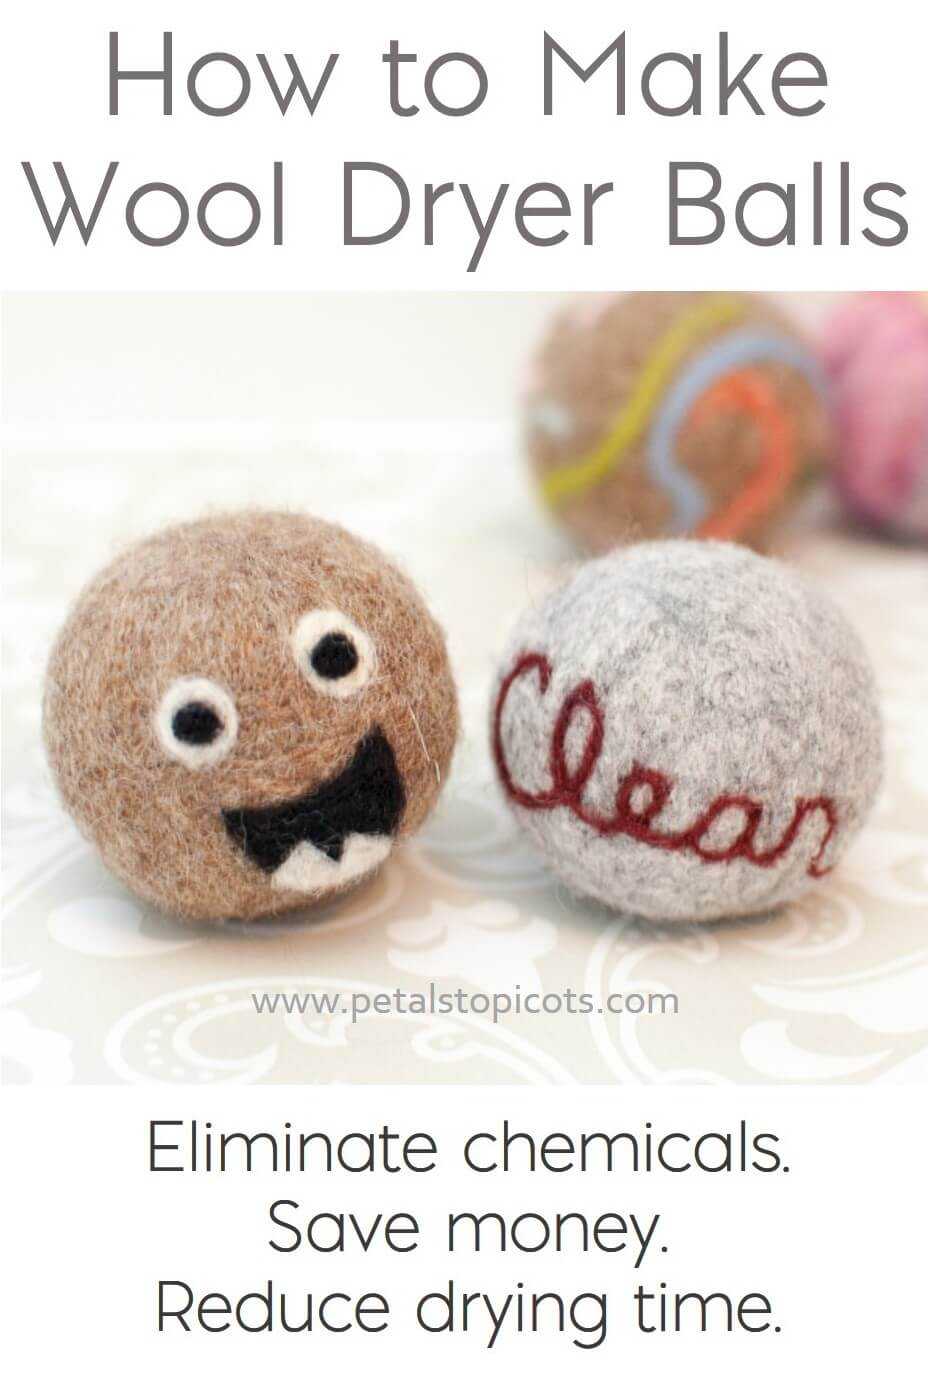 Learn how to make your own wool dryer balls quickly and easily.  Eliminate chemicals, save money, and reduce drying times!